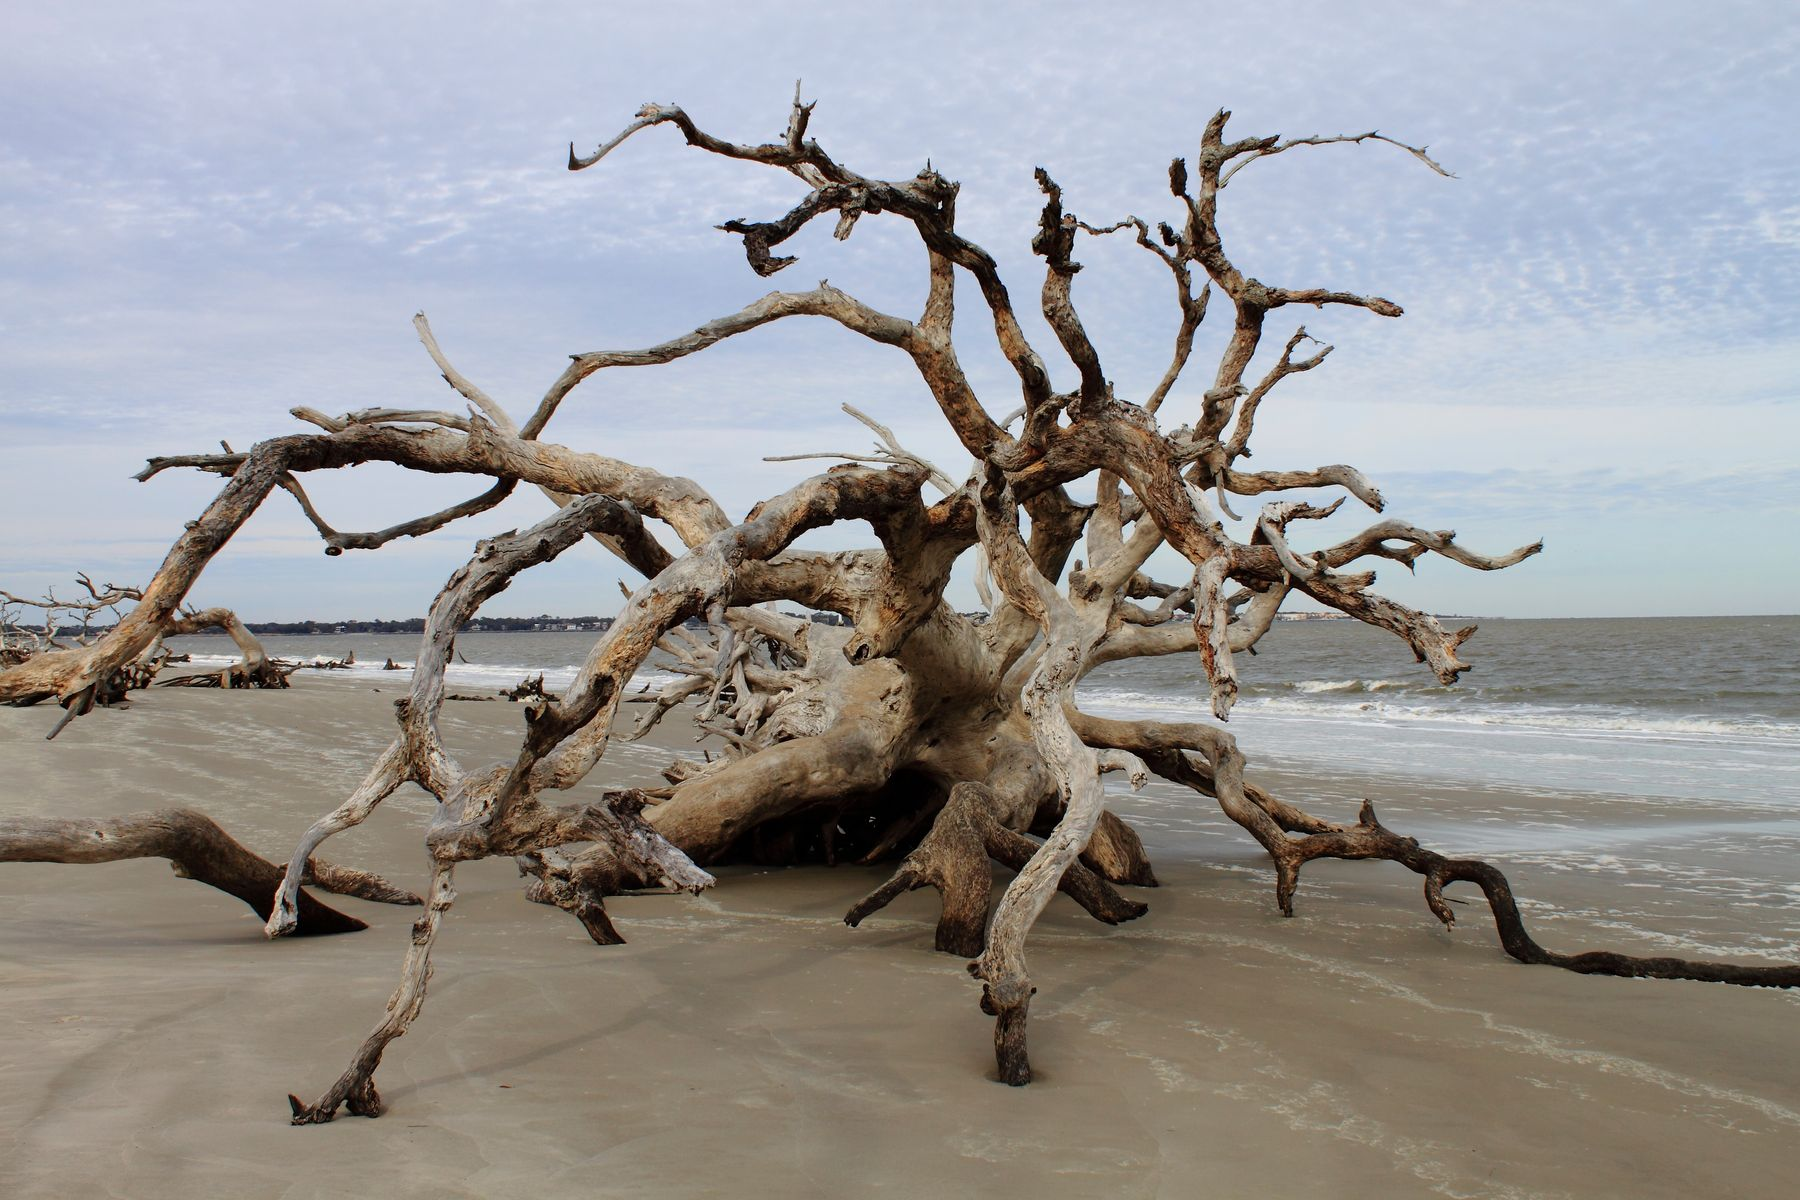 Washed up drift wood on a beach.